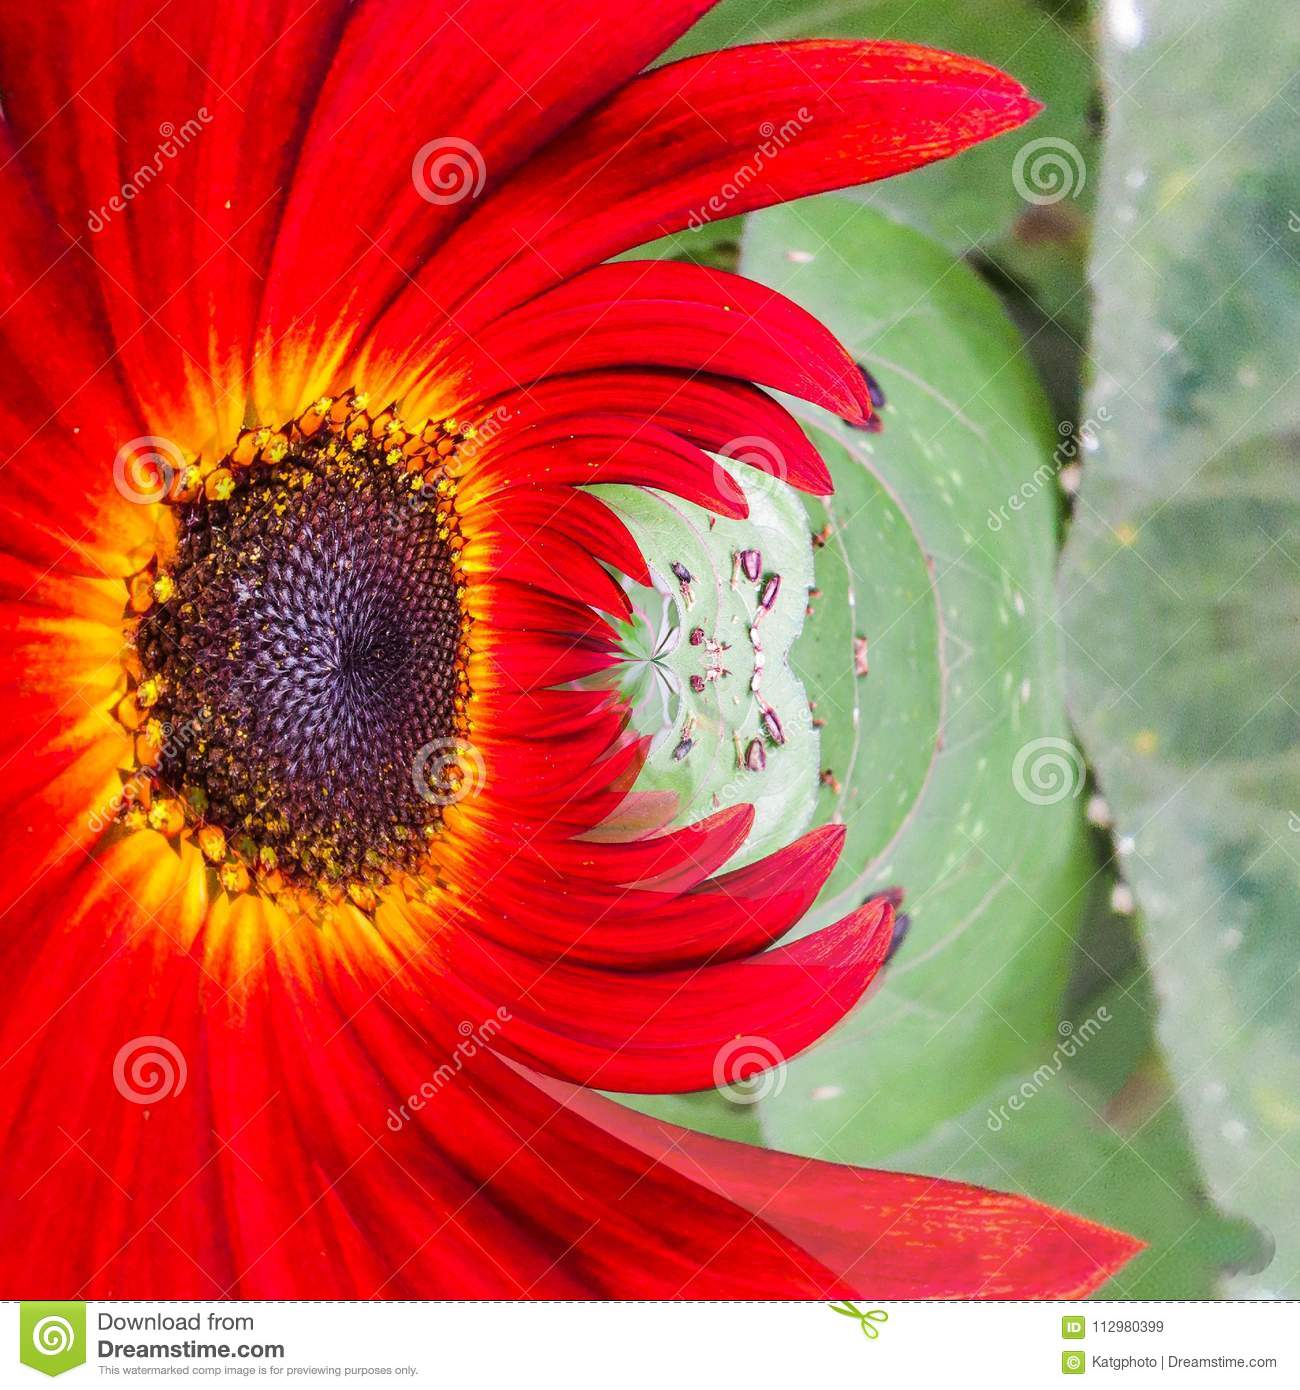 Abstract Formation A Colorful Red Zinnia Flower With A Green Plant Background